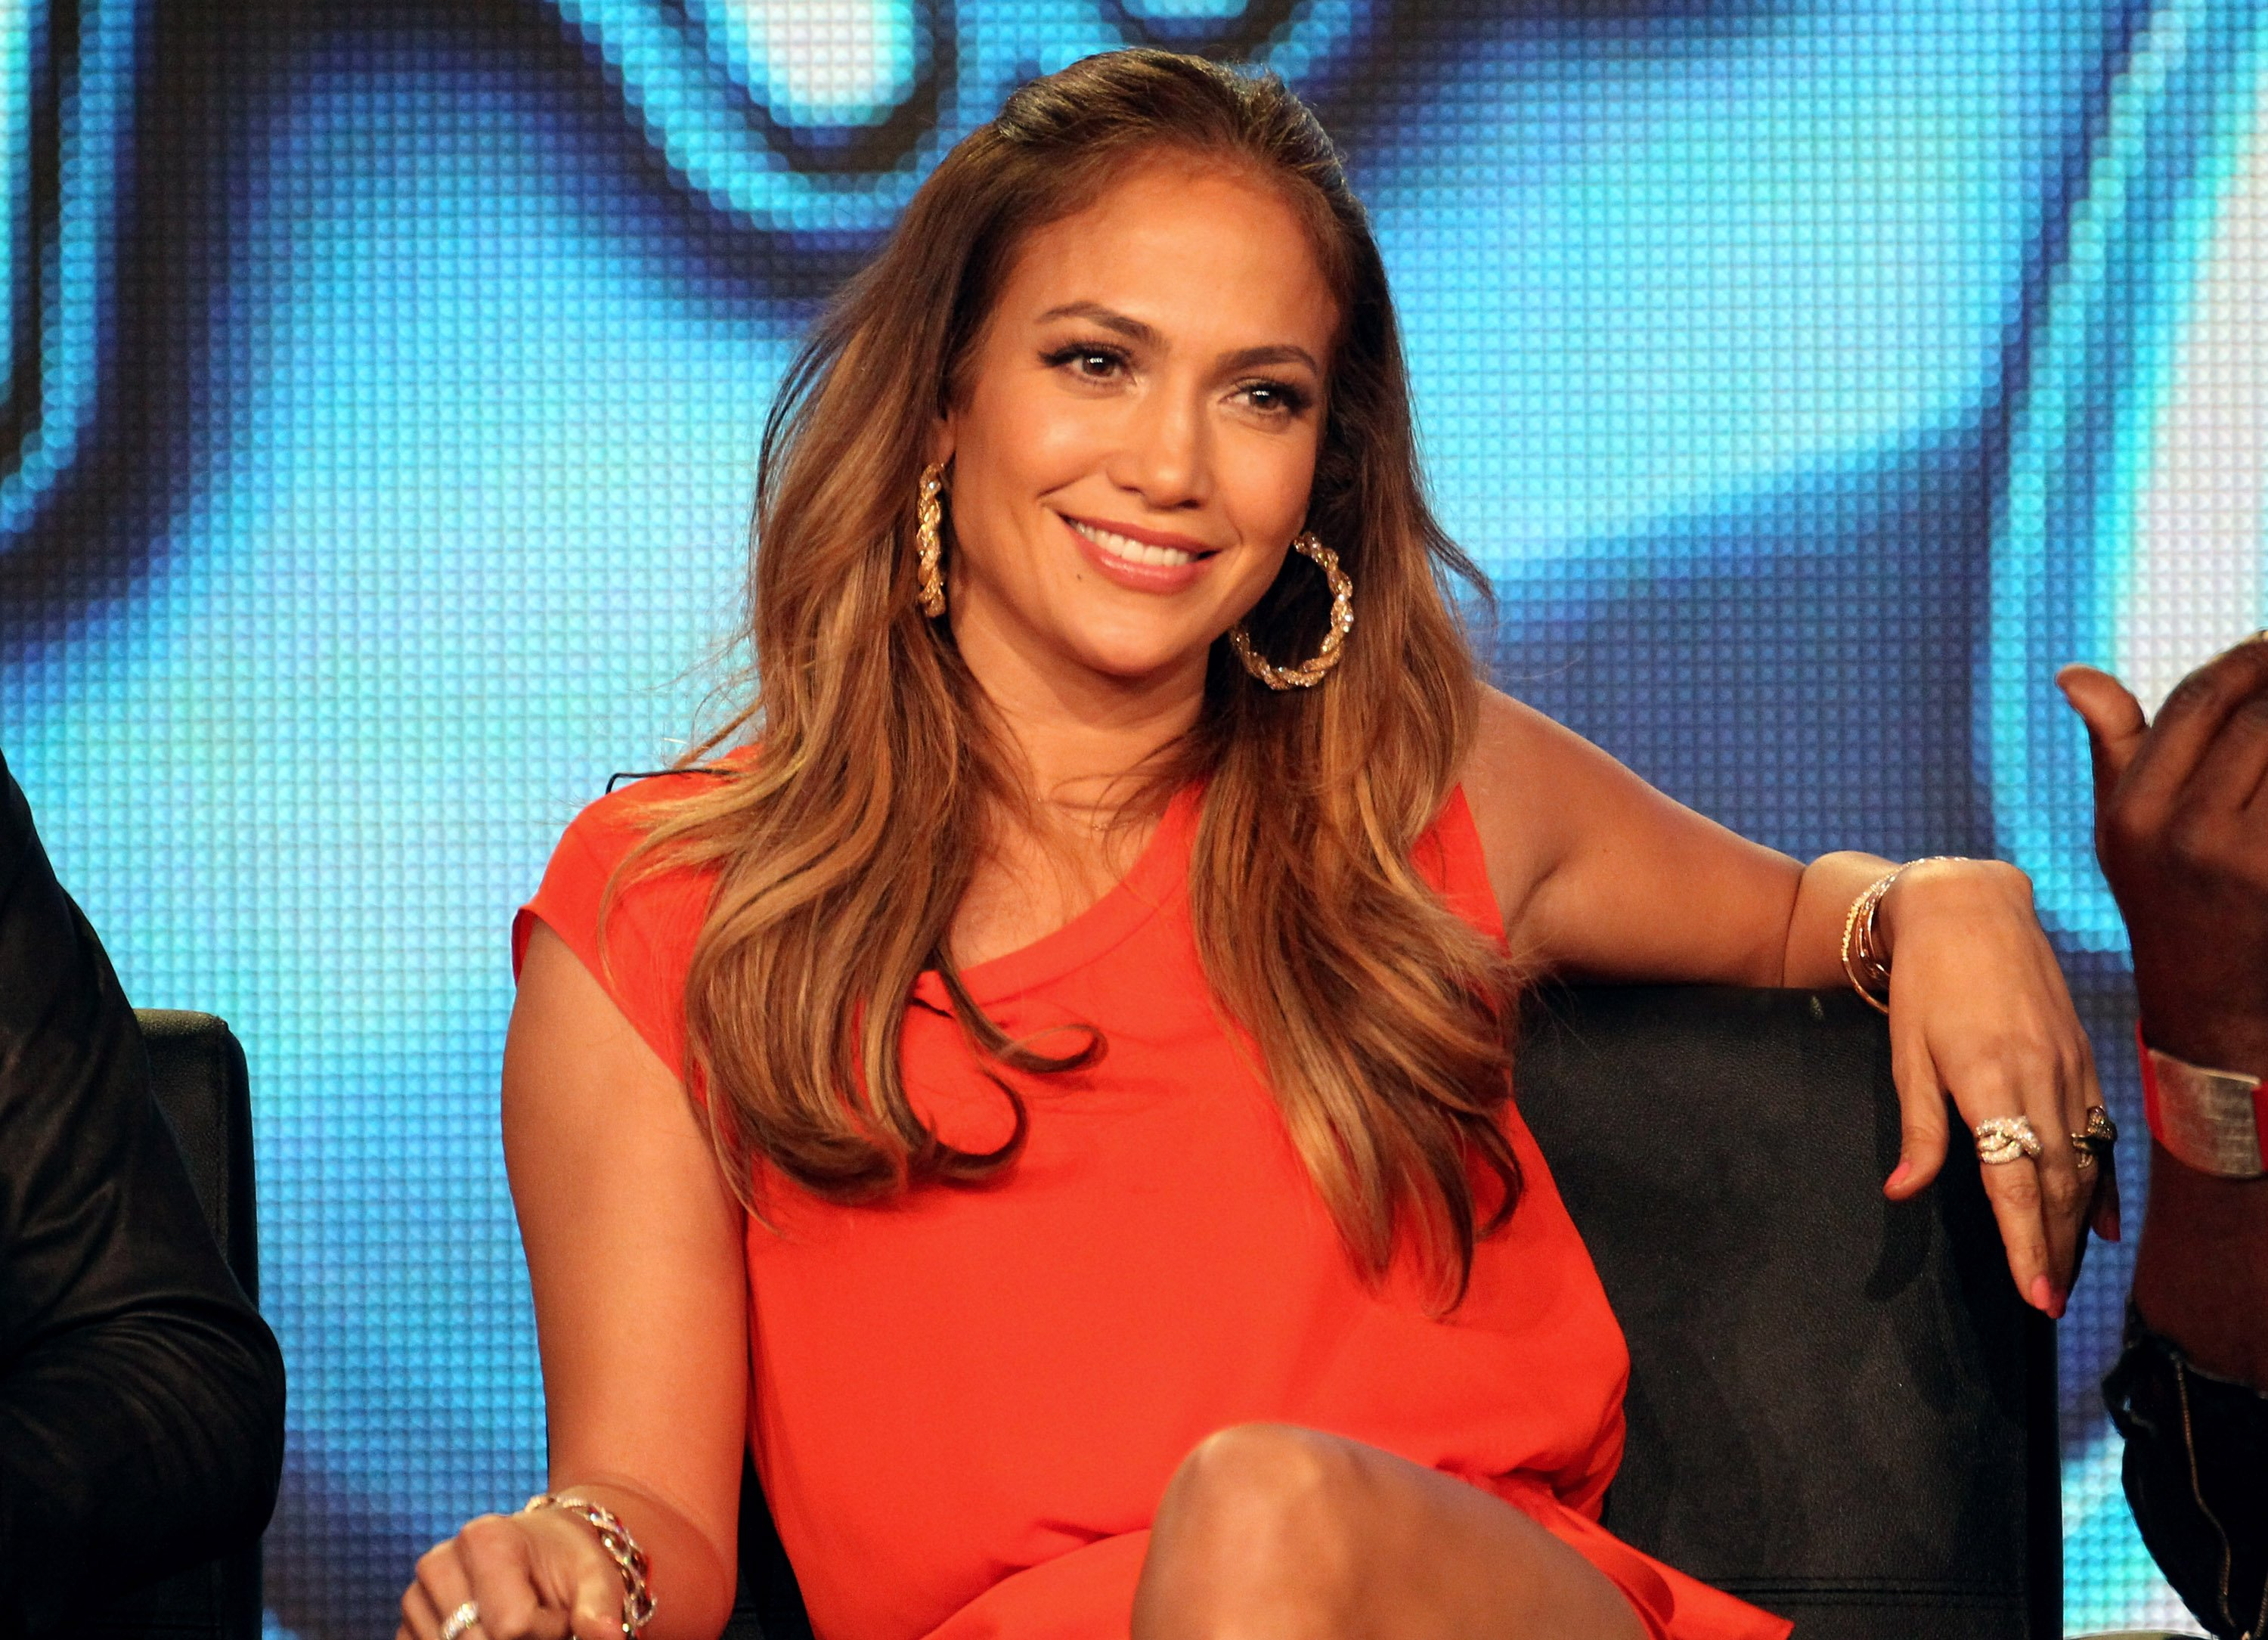 Image Credit: Getty Images / Jennifer Lopez on the set of American Idol.